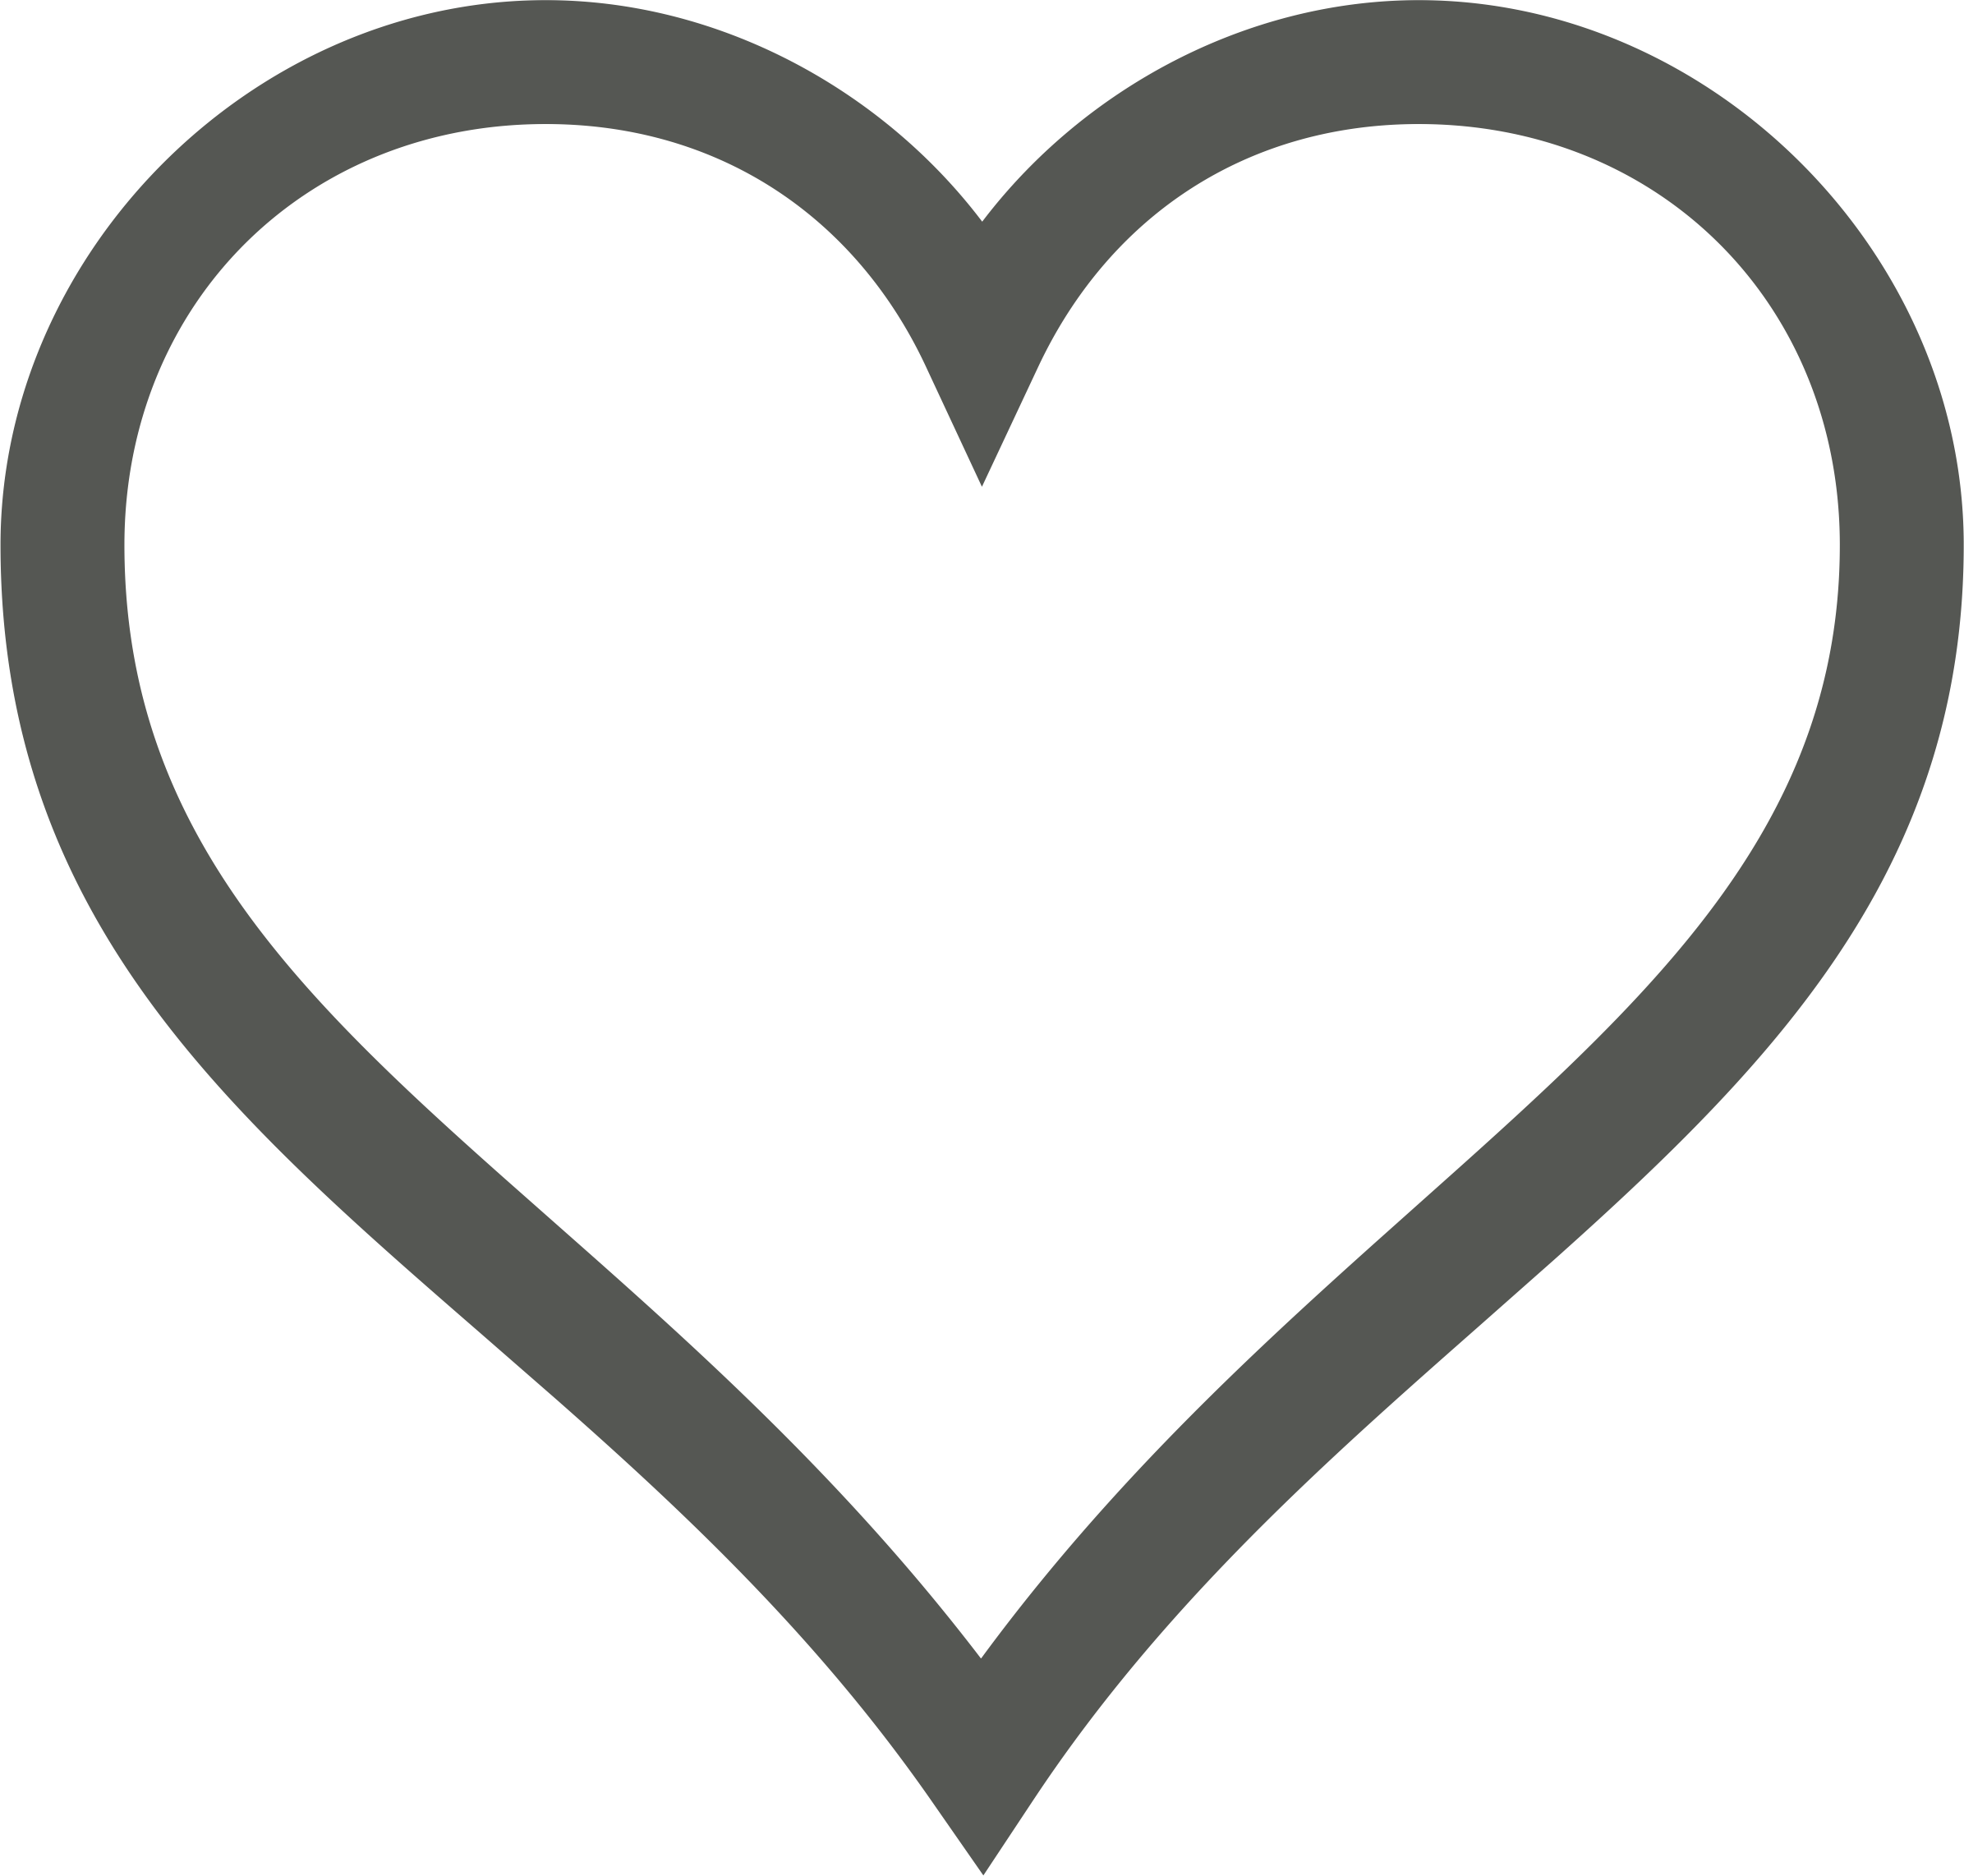 Heart icon png. Clipart deselected big image